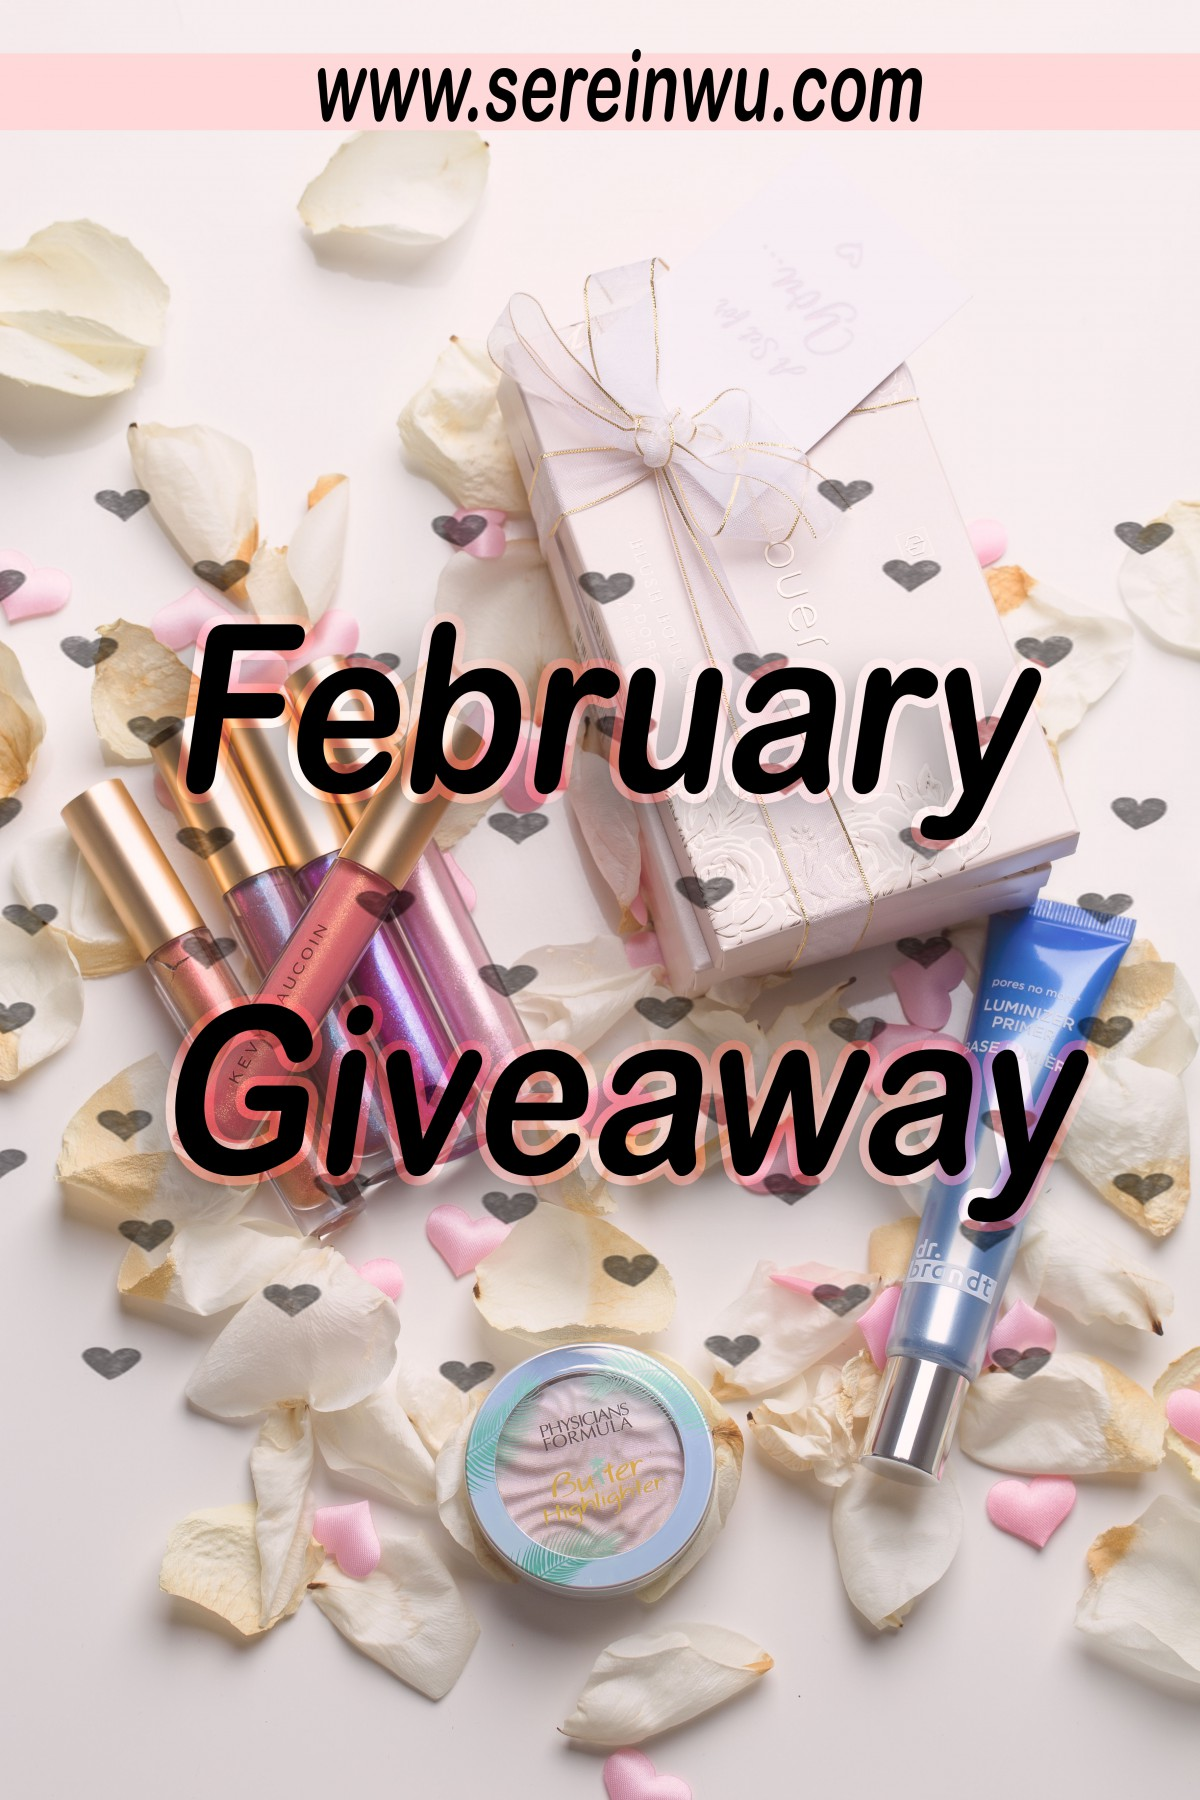 NEW IN BEAUTY FEBRUARY 2018 GIVEAWAY